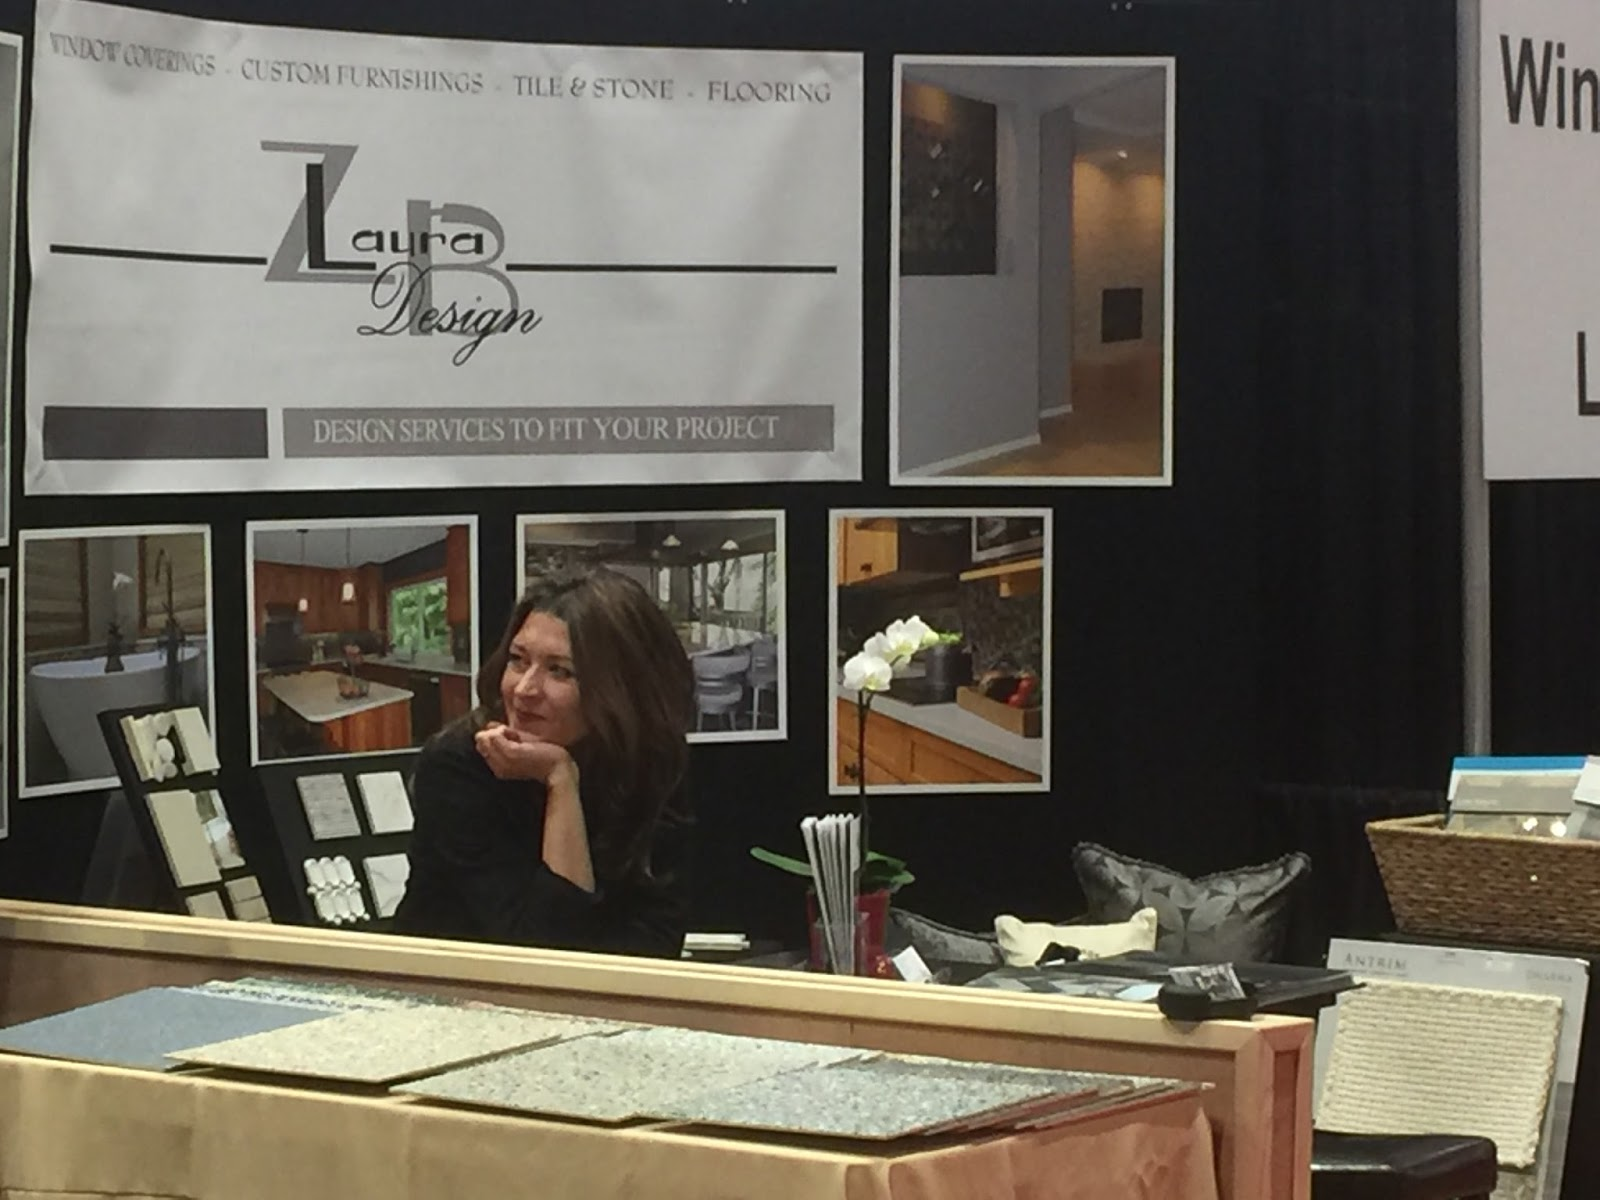 Seattle home show interior design remodeling services from laura zb design for Home design and remodeling show 2017